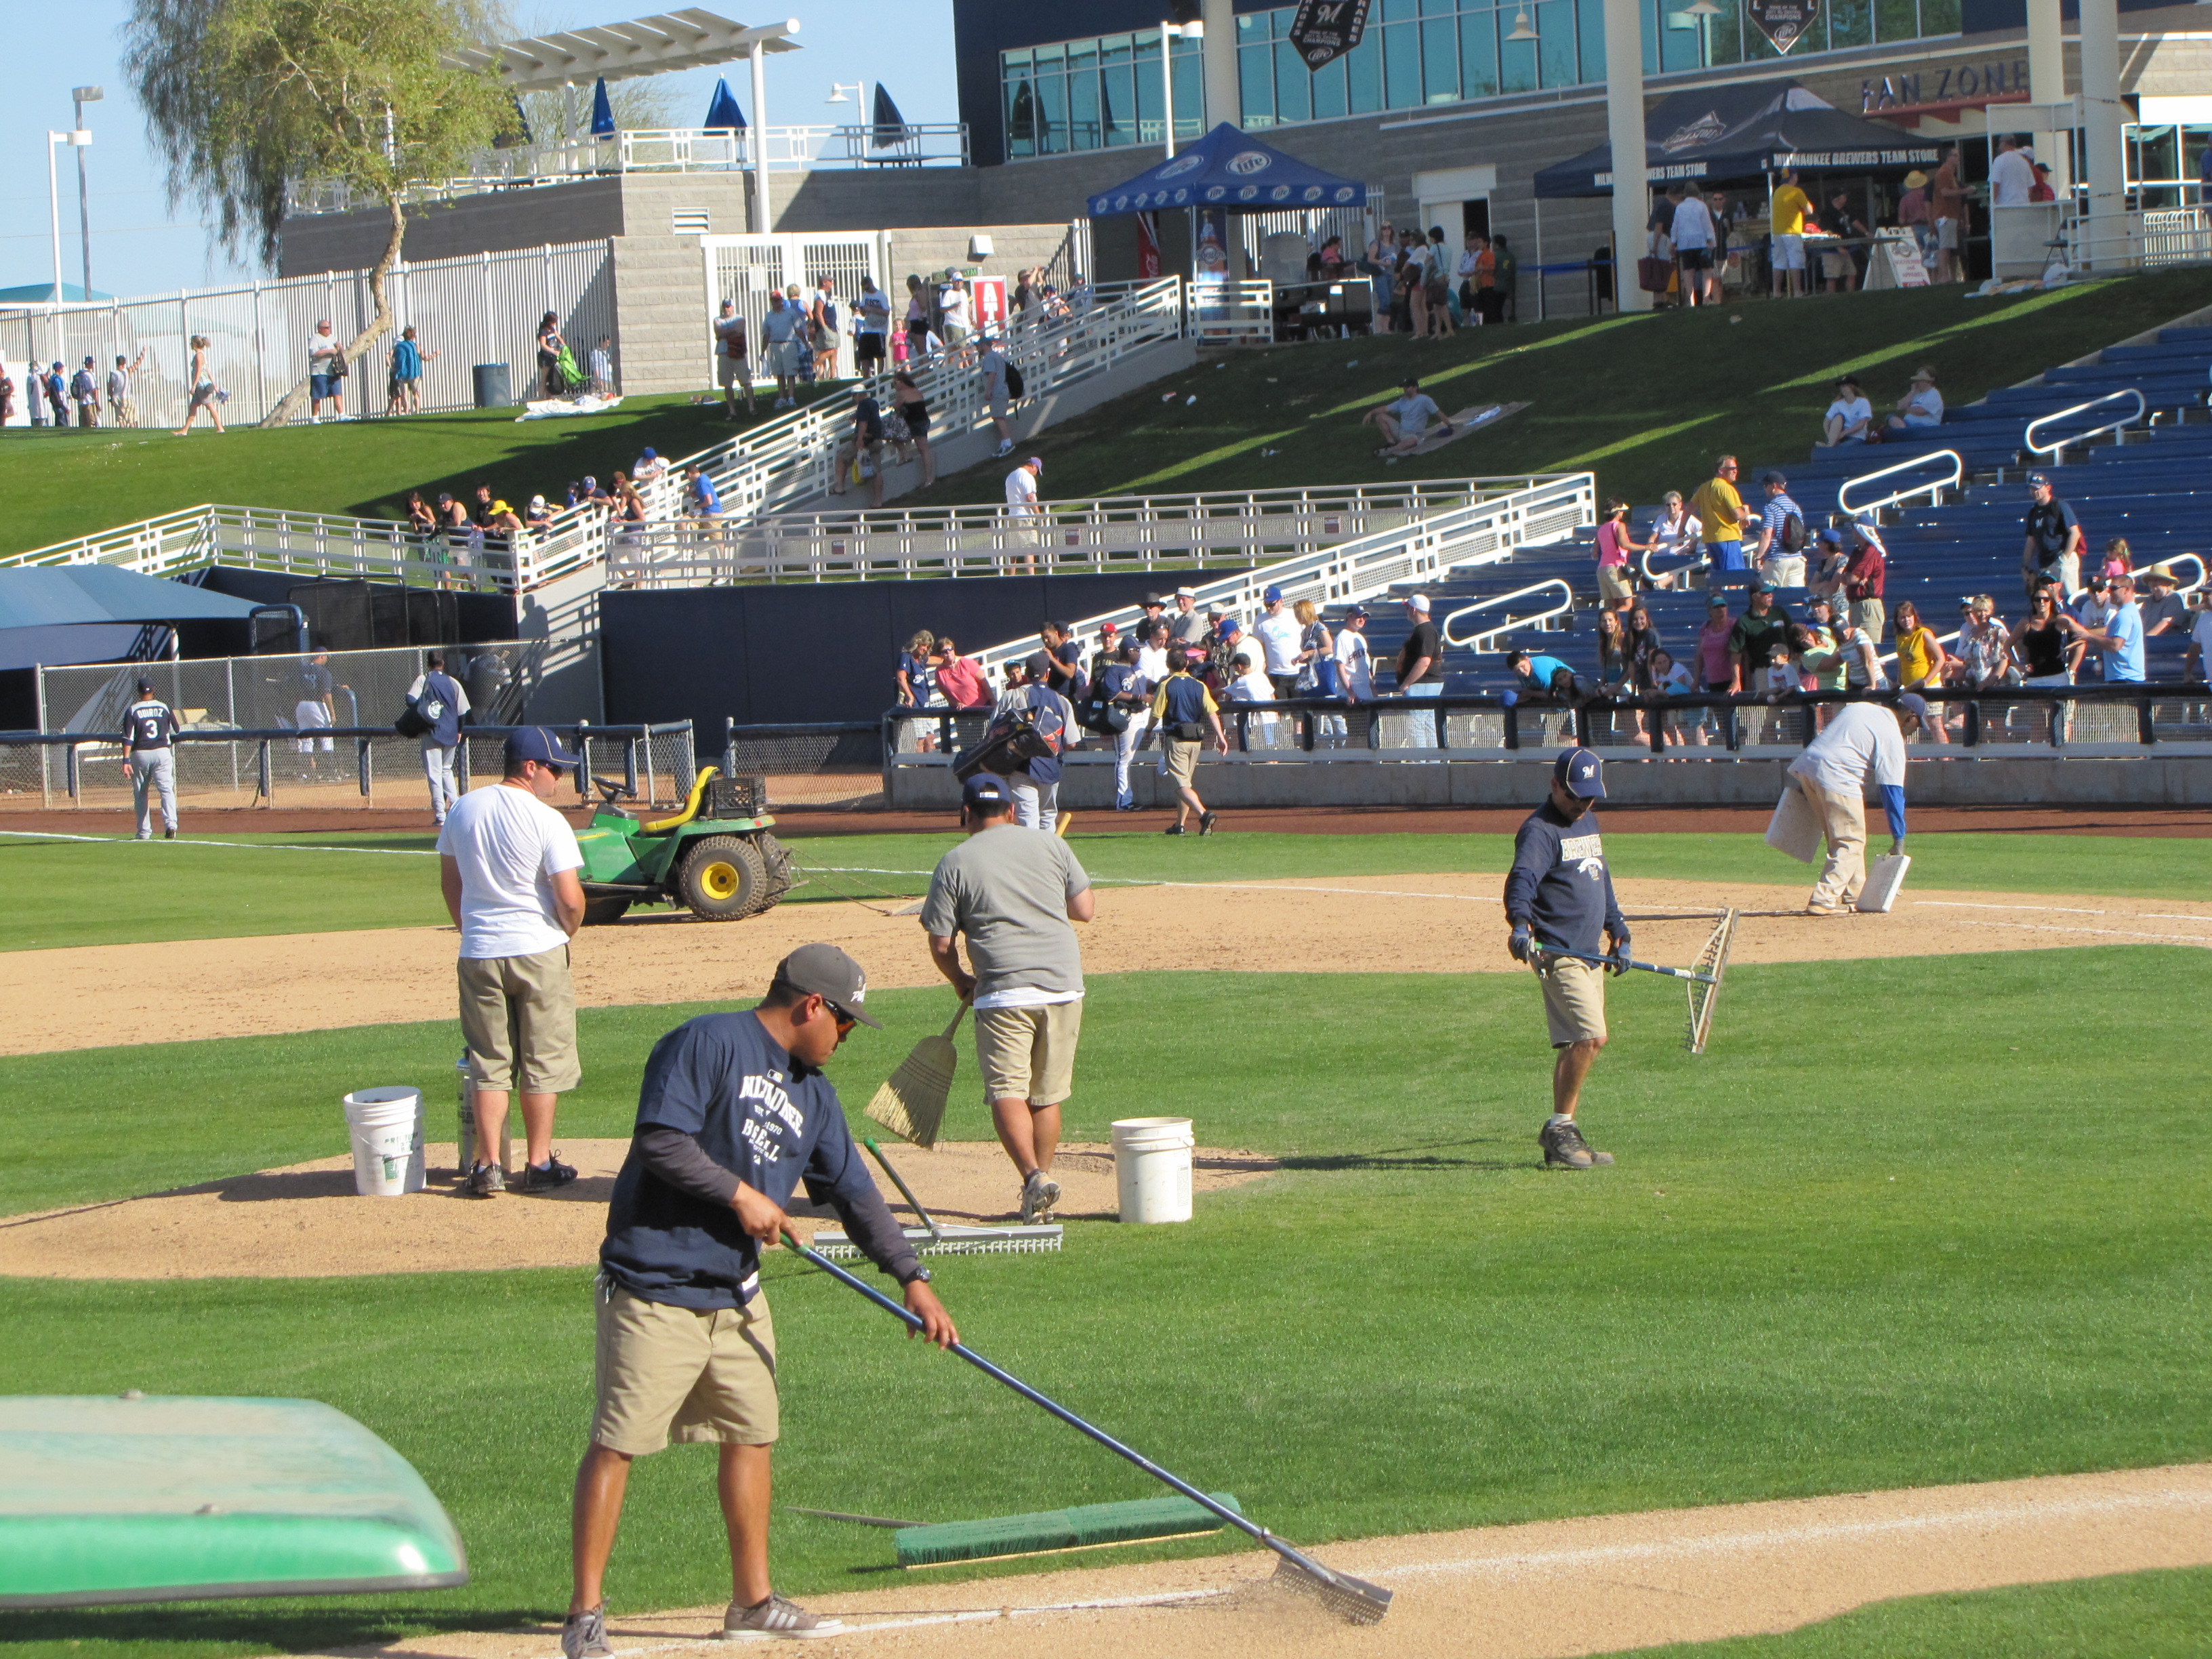 Milwaukee Brewers grounds crew